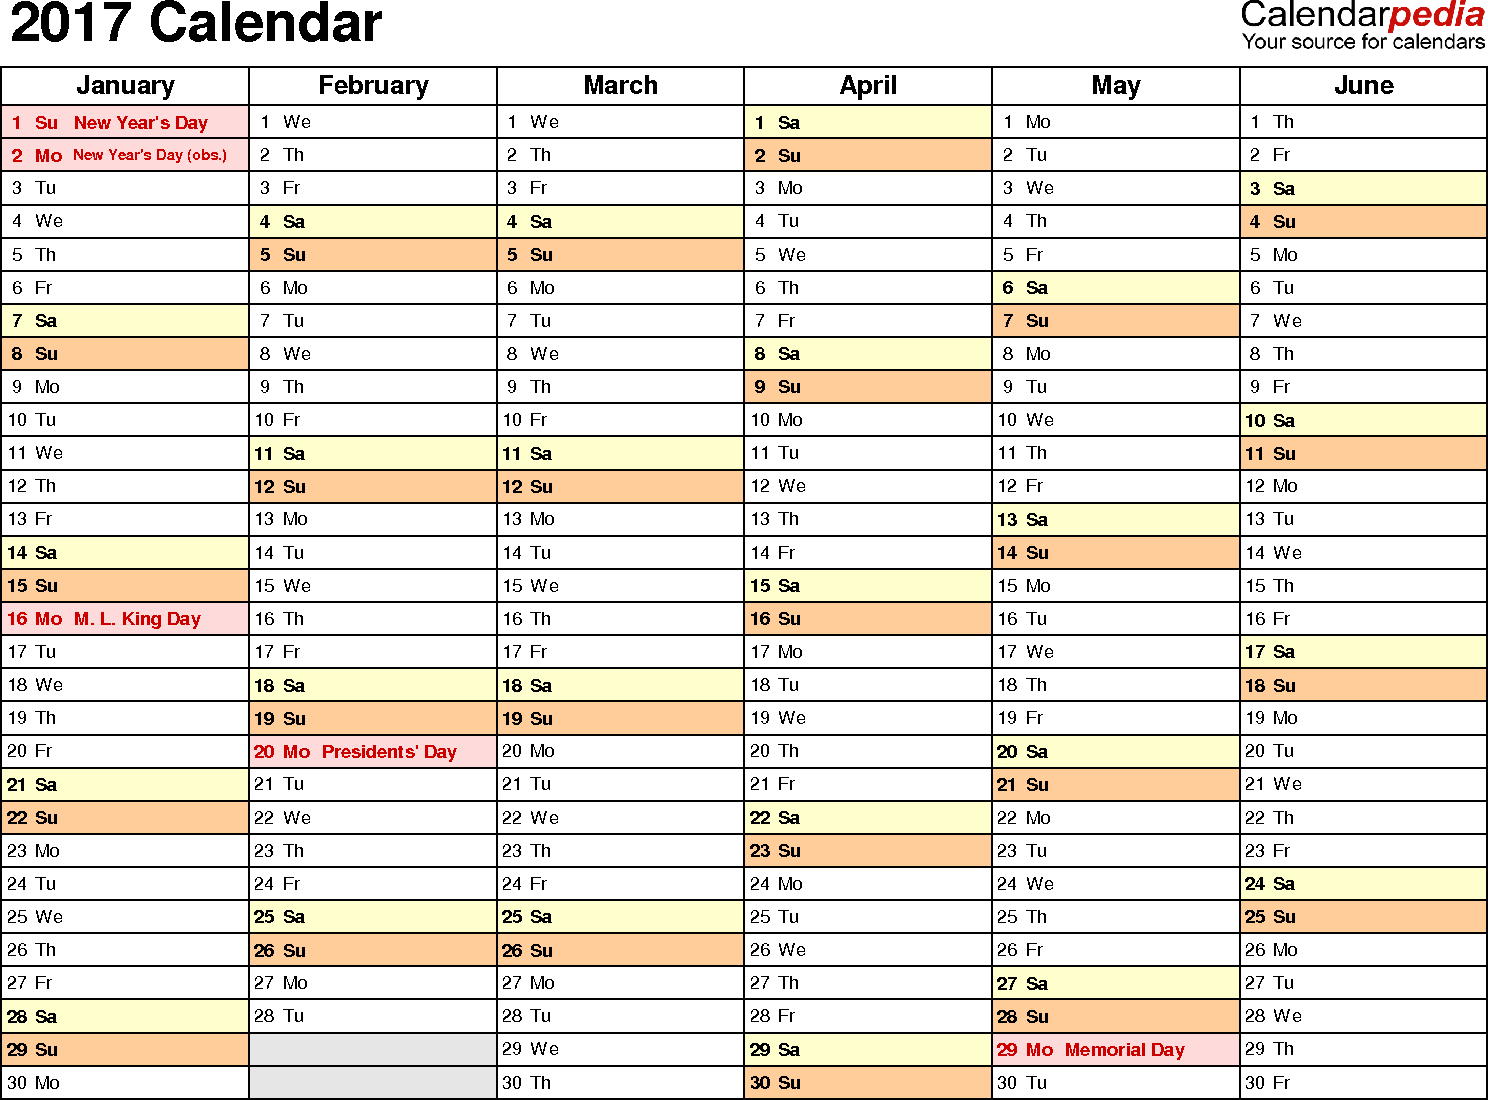 Ediblewildsus  Inspiring  Calendar  Download  Free Printable Excel Templates Xls With Extraordinary Template   Calendar For Excel Months Horizontally  Pages Landscape Orientation With Astounding Excel Count Days Between Two Dates Also Excel Vba Cells Value In Addition Data Analysis In Excel Mac And Excel Random Number No Repeats As Well As Graph Equations In Excel Additionally Free Microsoft Excel  Download From Calendarpediacom With Ediblewildsus  Extraordinary  Calendar  Download  Free Printable Excel Templates Xls With Astounding Template   Calendar For Excel Months Horizontally  Pages Landscape Orientation And Inspiring Excel Count Days Between Two Dates Also Excel Vba Cells Value In Addition Data Analysis In Excel Mac From Calendarpediacom